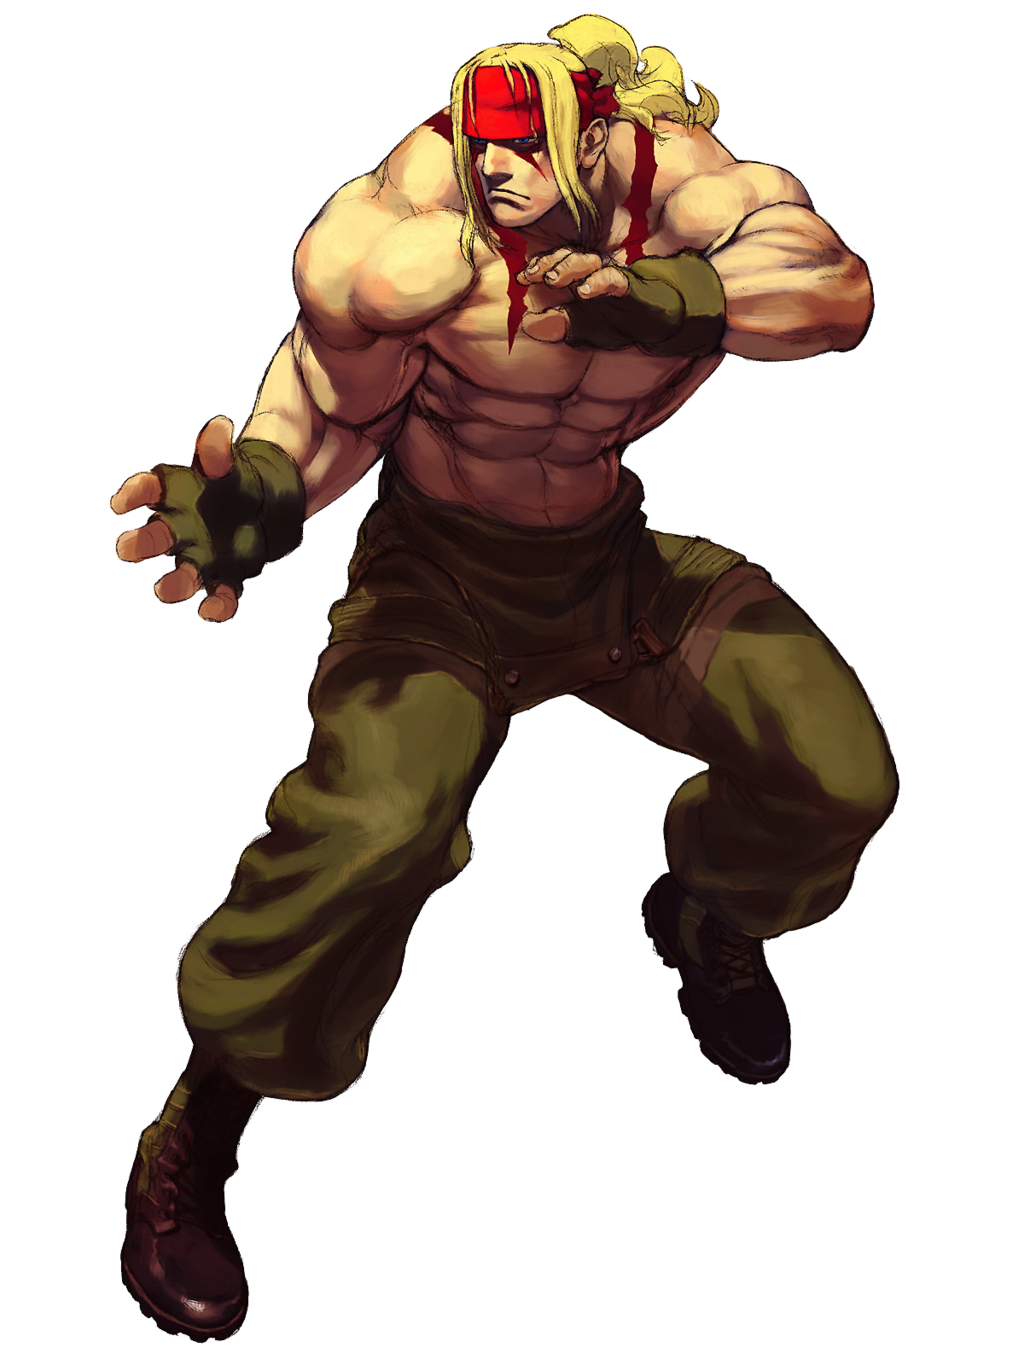 Street Fighter Iii 3rd Strike Alex By Hes6789 D8zgi1w Png Png Imagen 1024 1365 Pixeles Street Fighter Characters Street Fighter Art Street Fighter